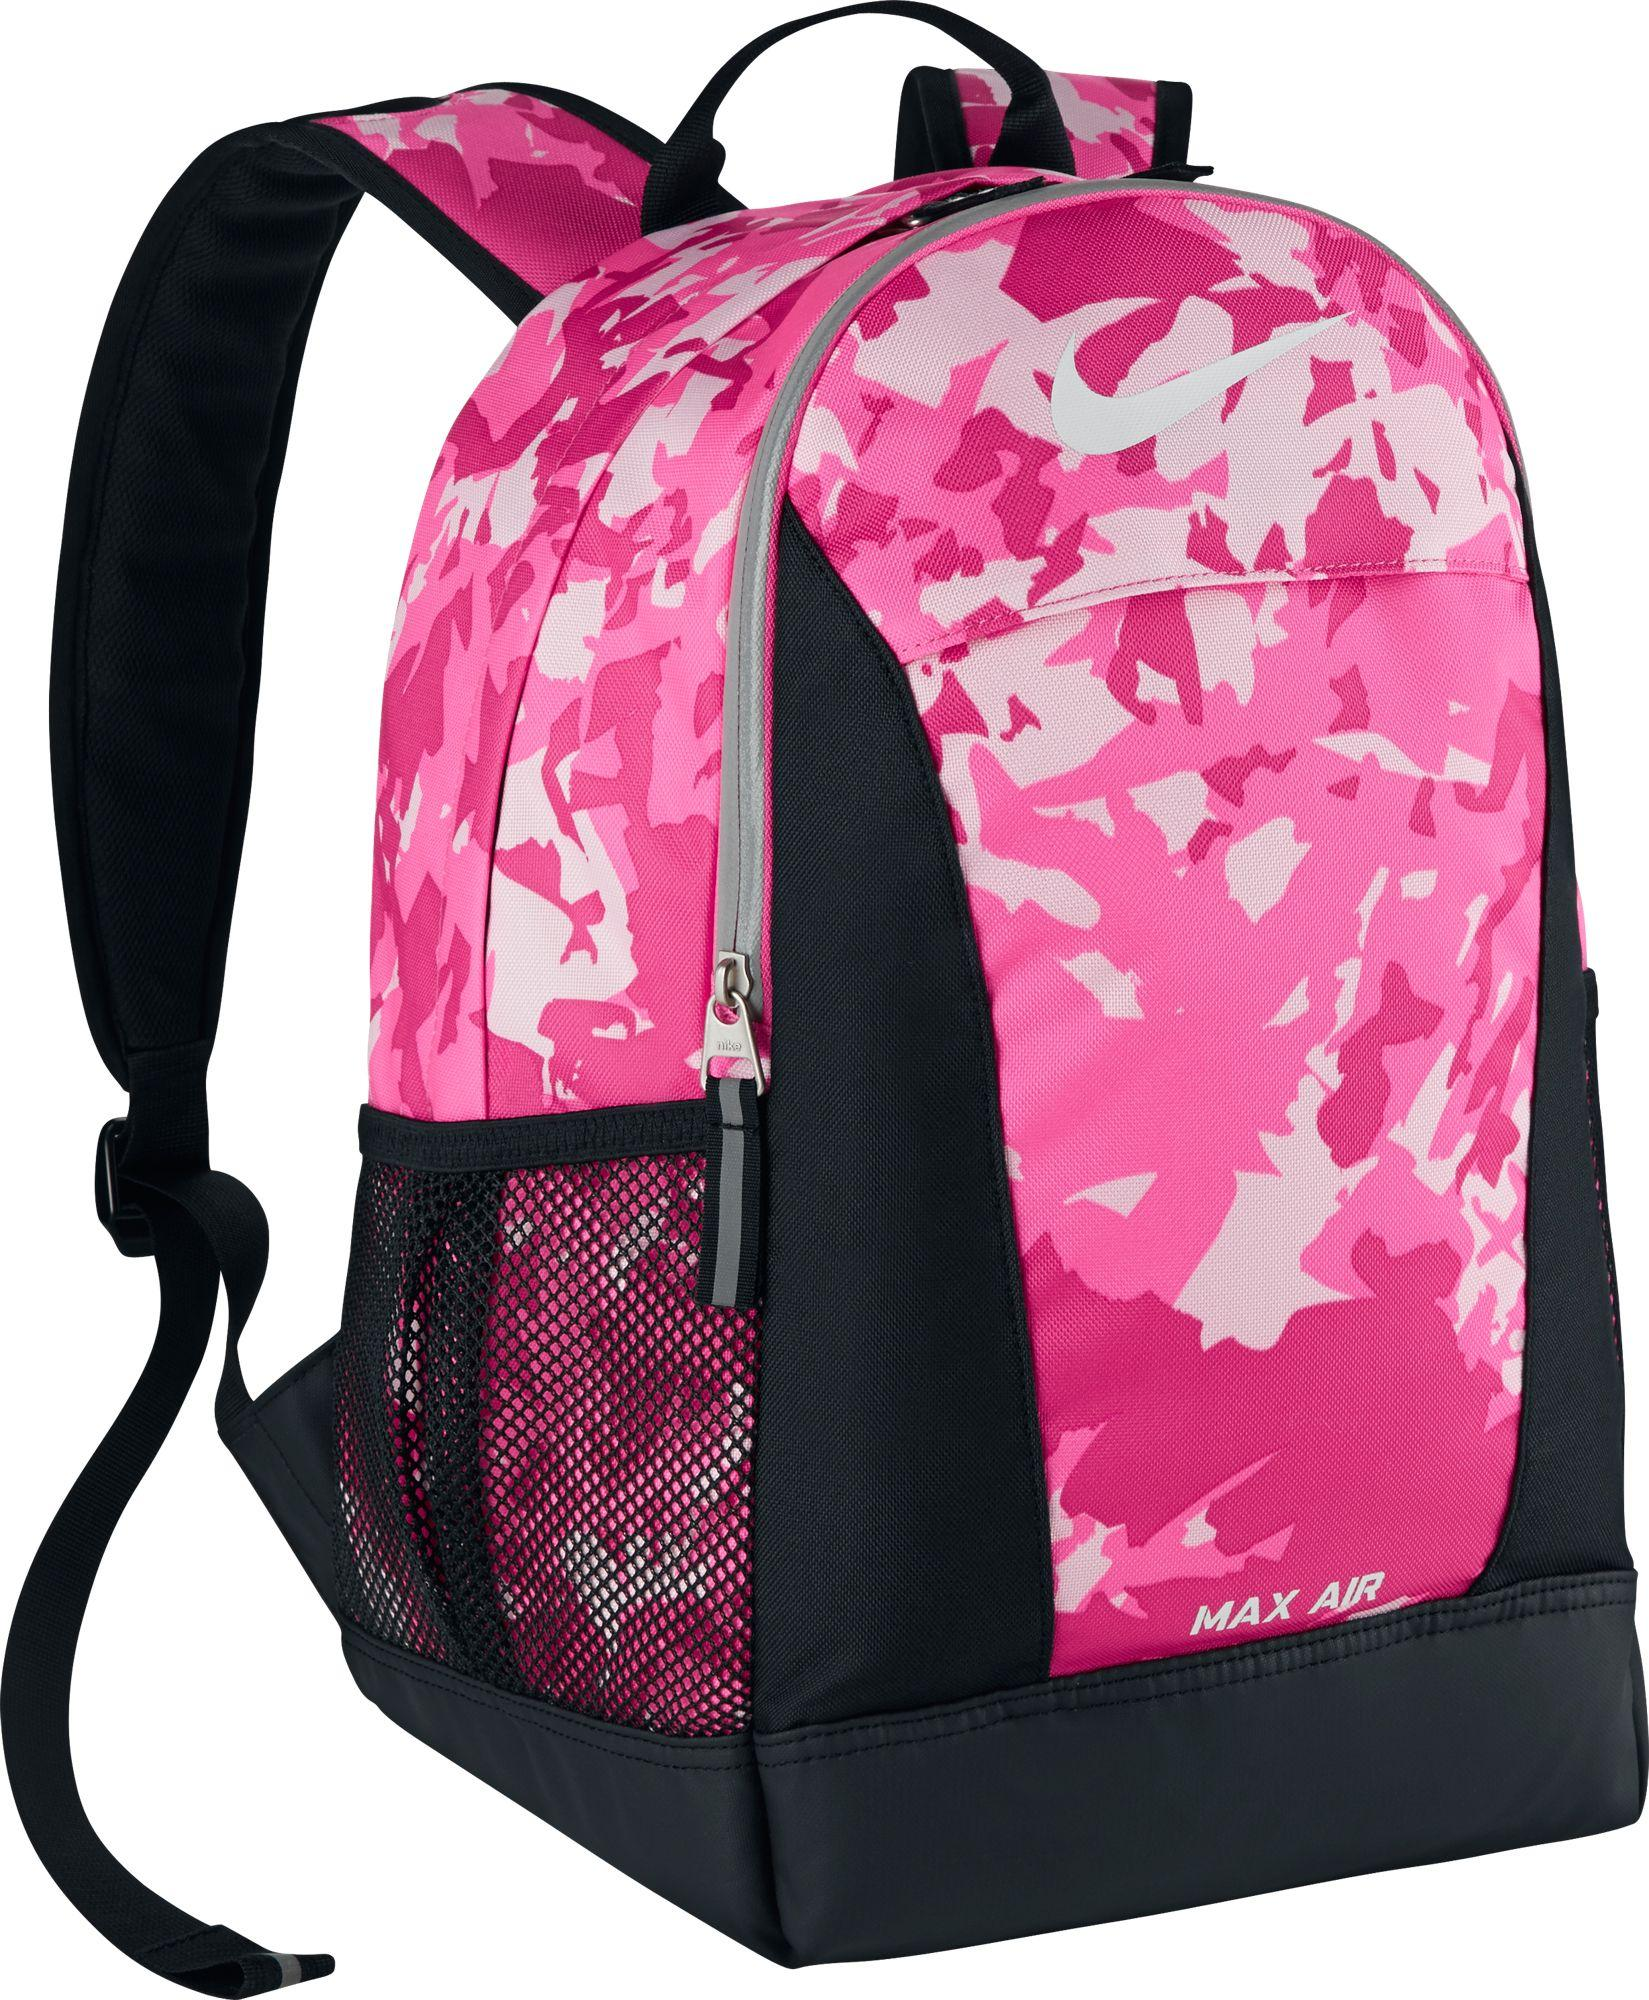 0676df2d7504 Lyst - Nike Ya Max Air Team Training Small Backpack in Pink